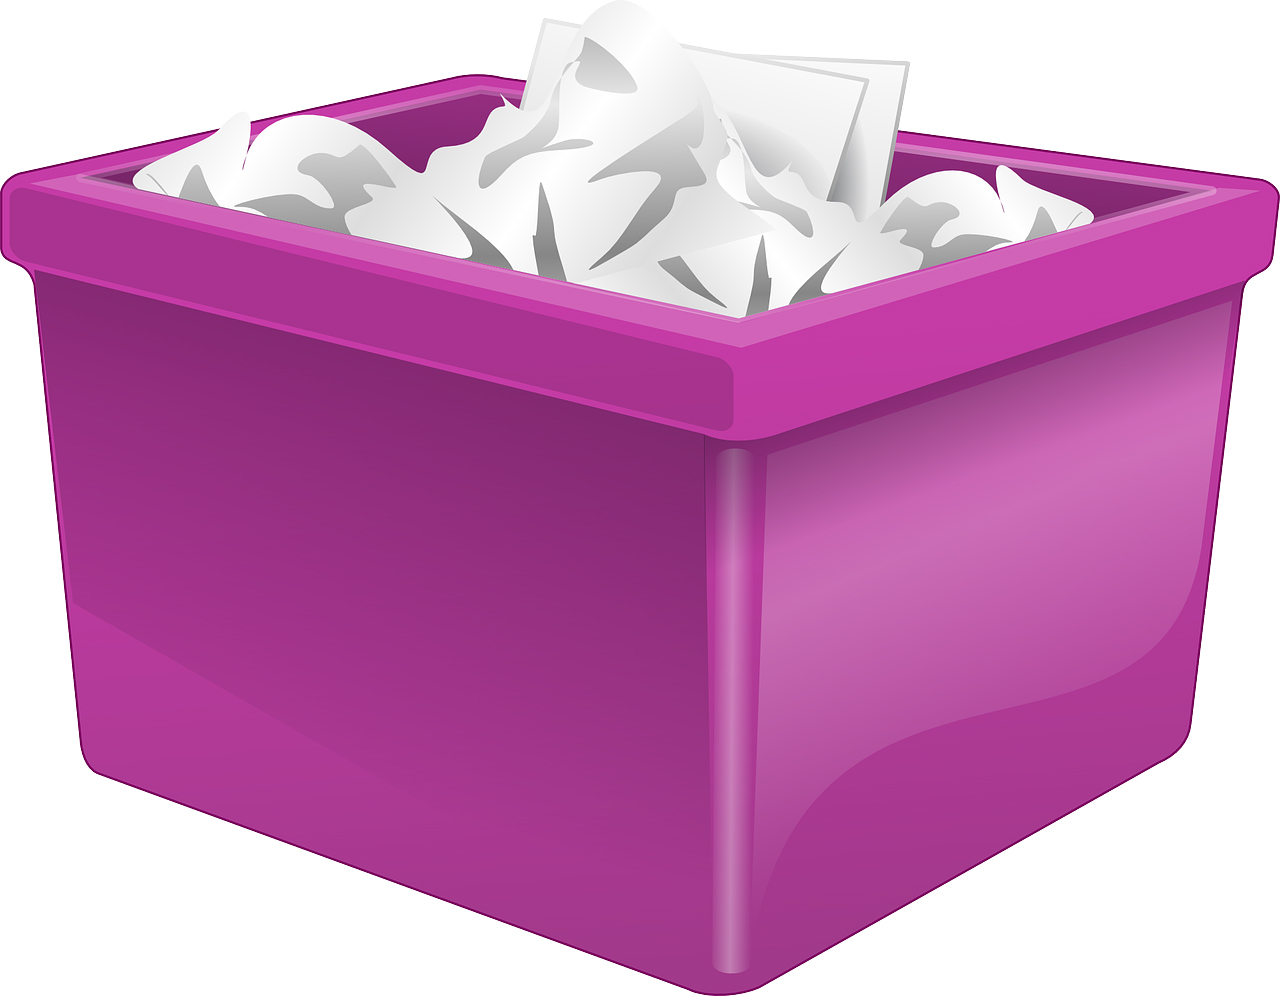 mailing lists, business lists,  campaigns, sales leads